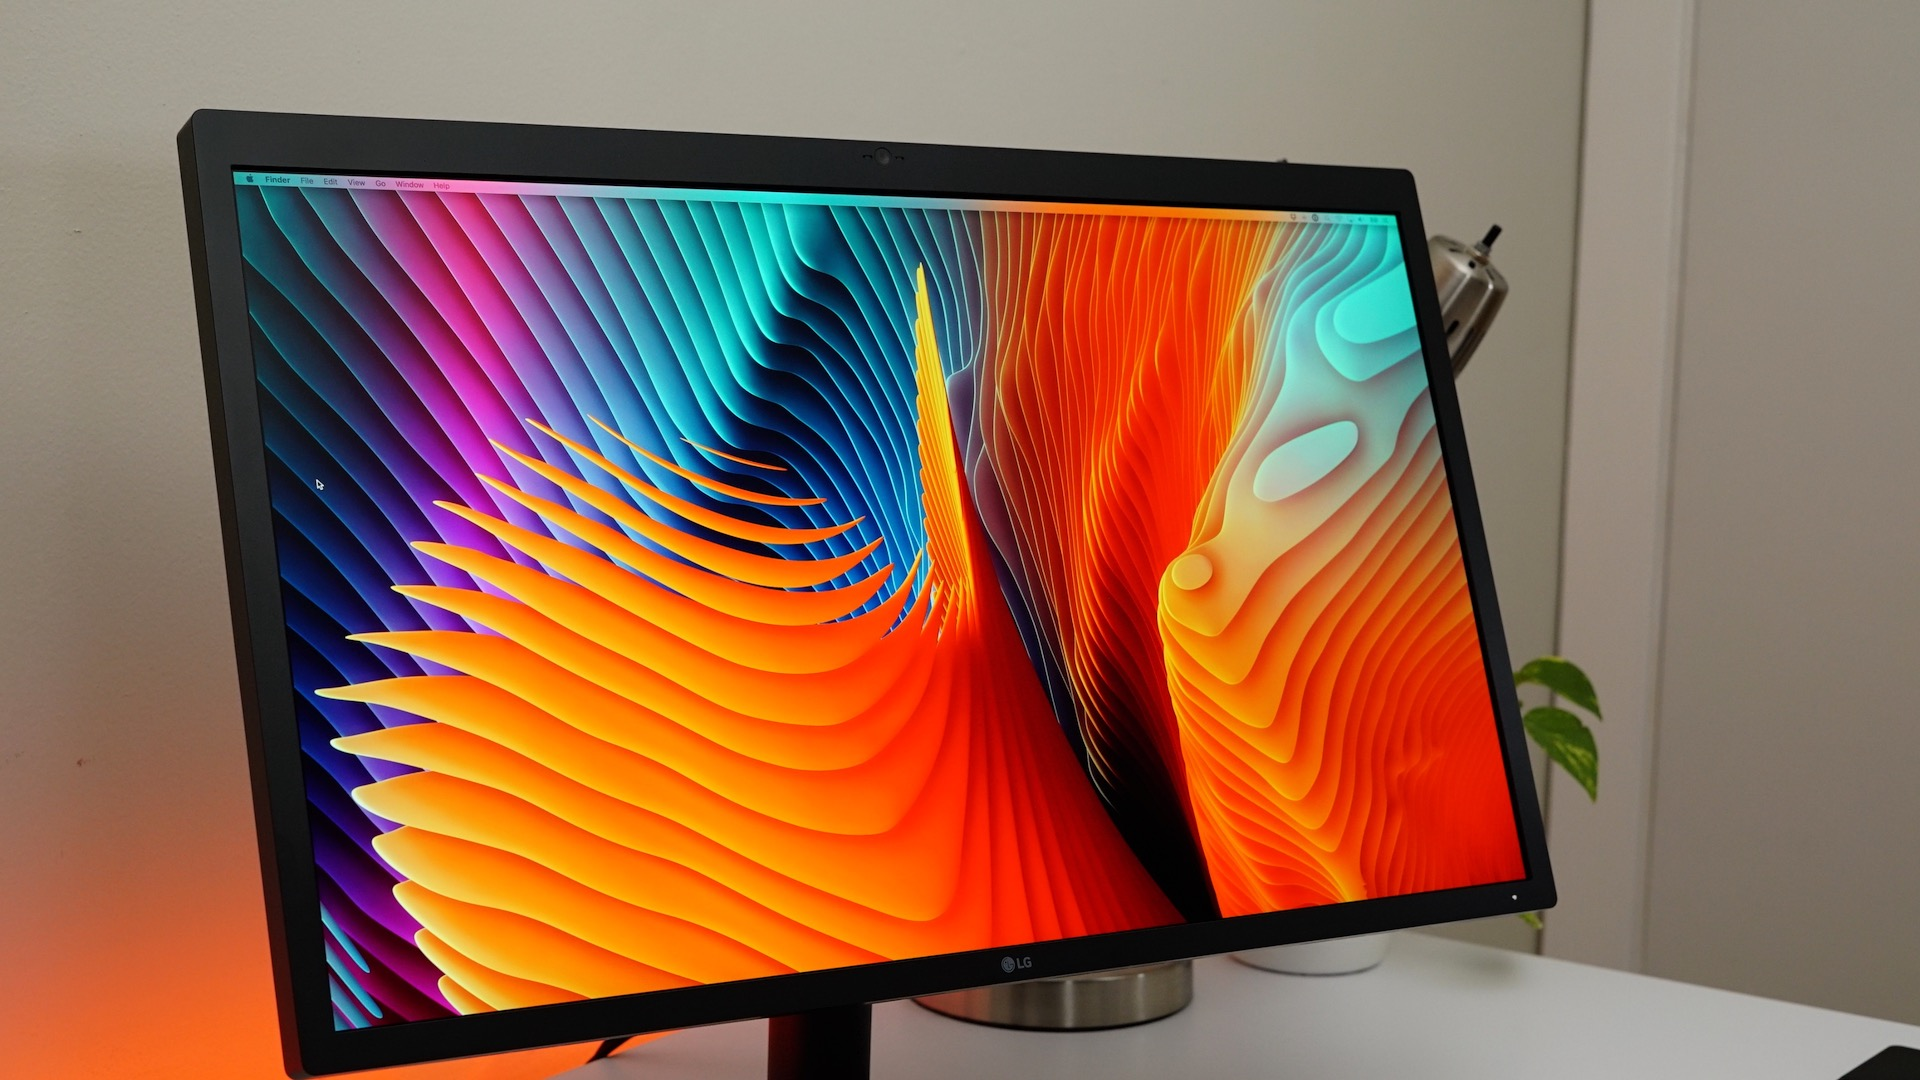 lg-ultrafine-5k-display-screen-brightness-500-nits